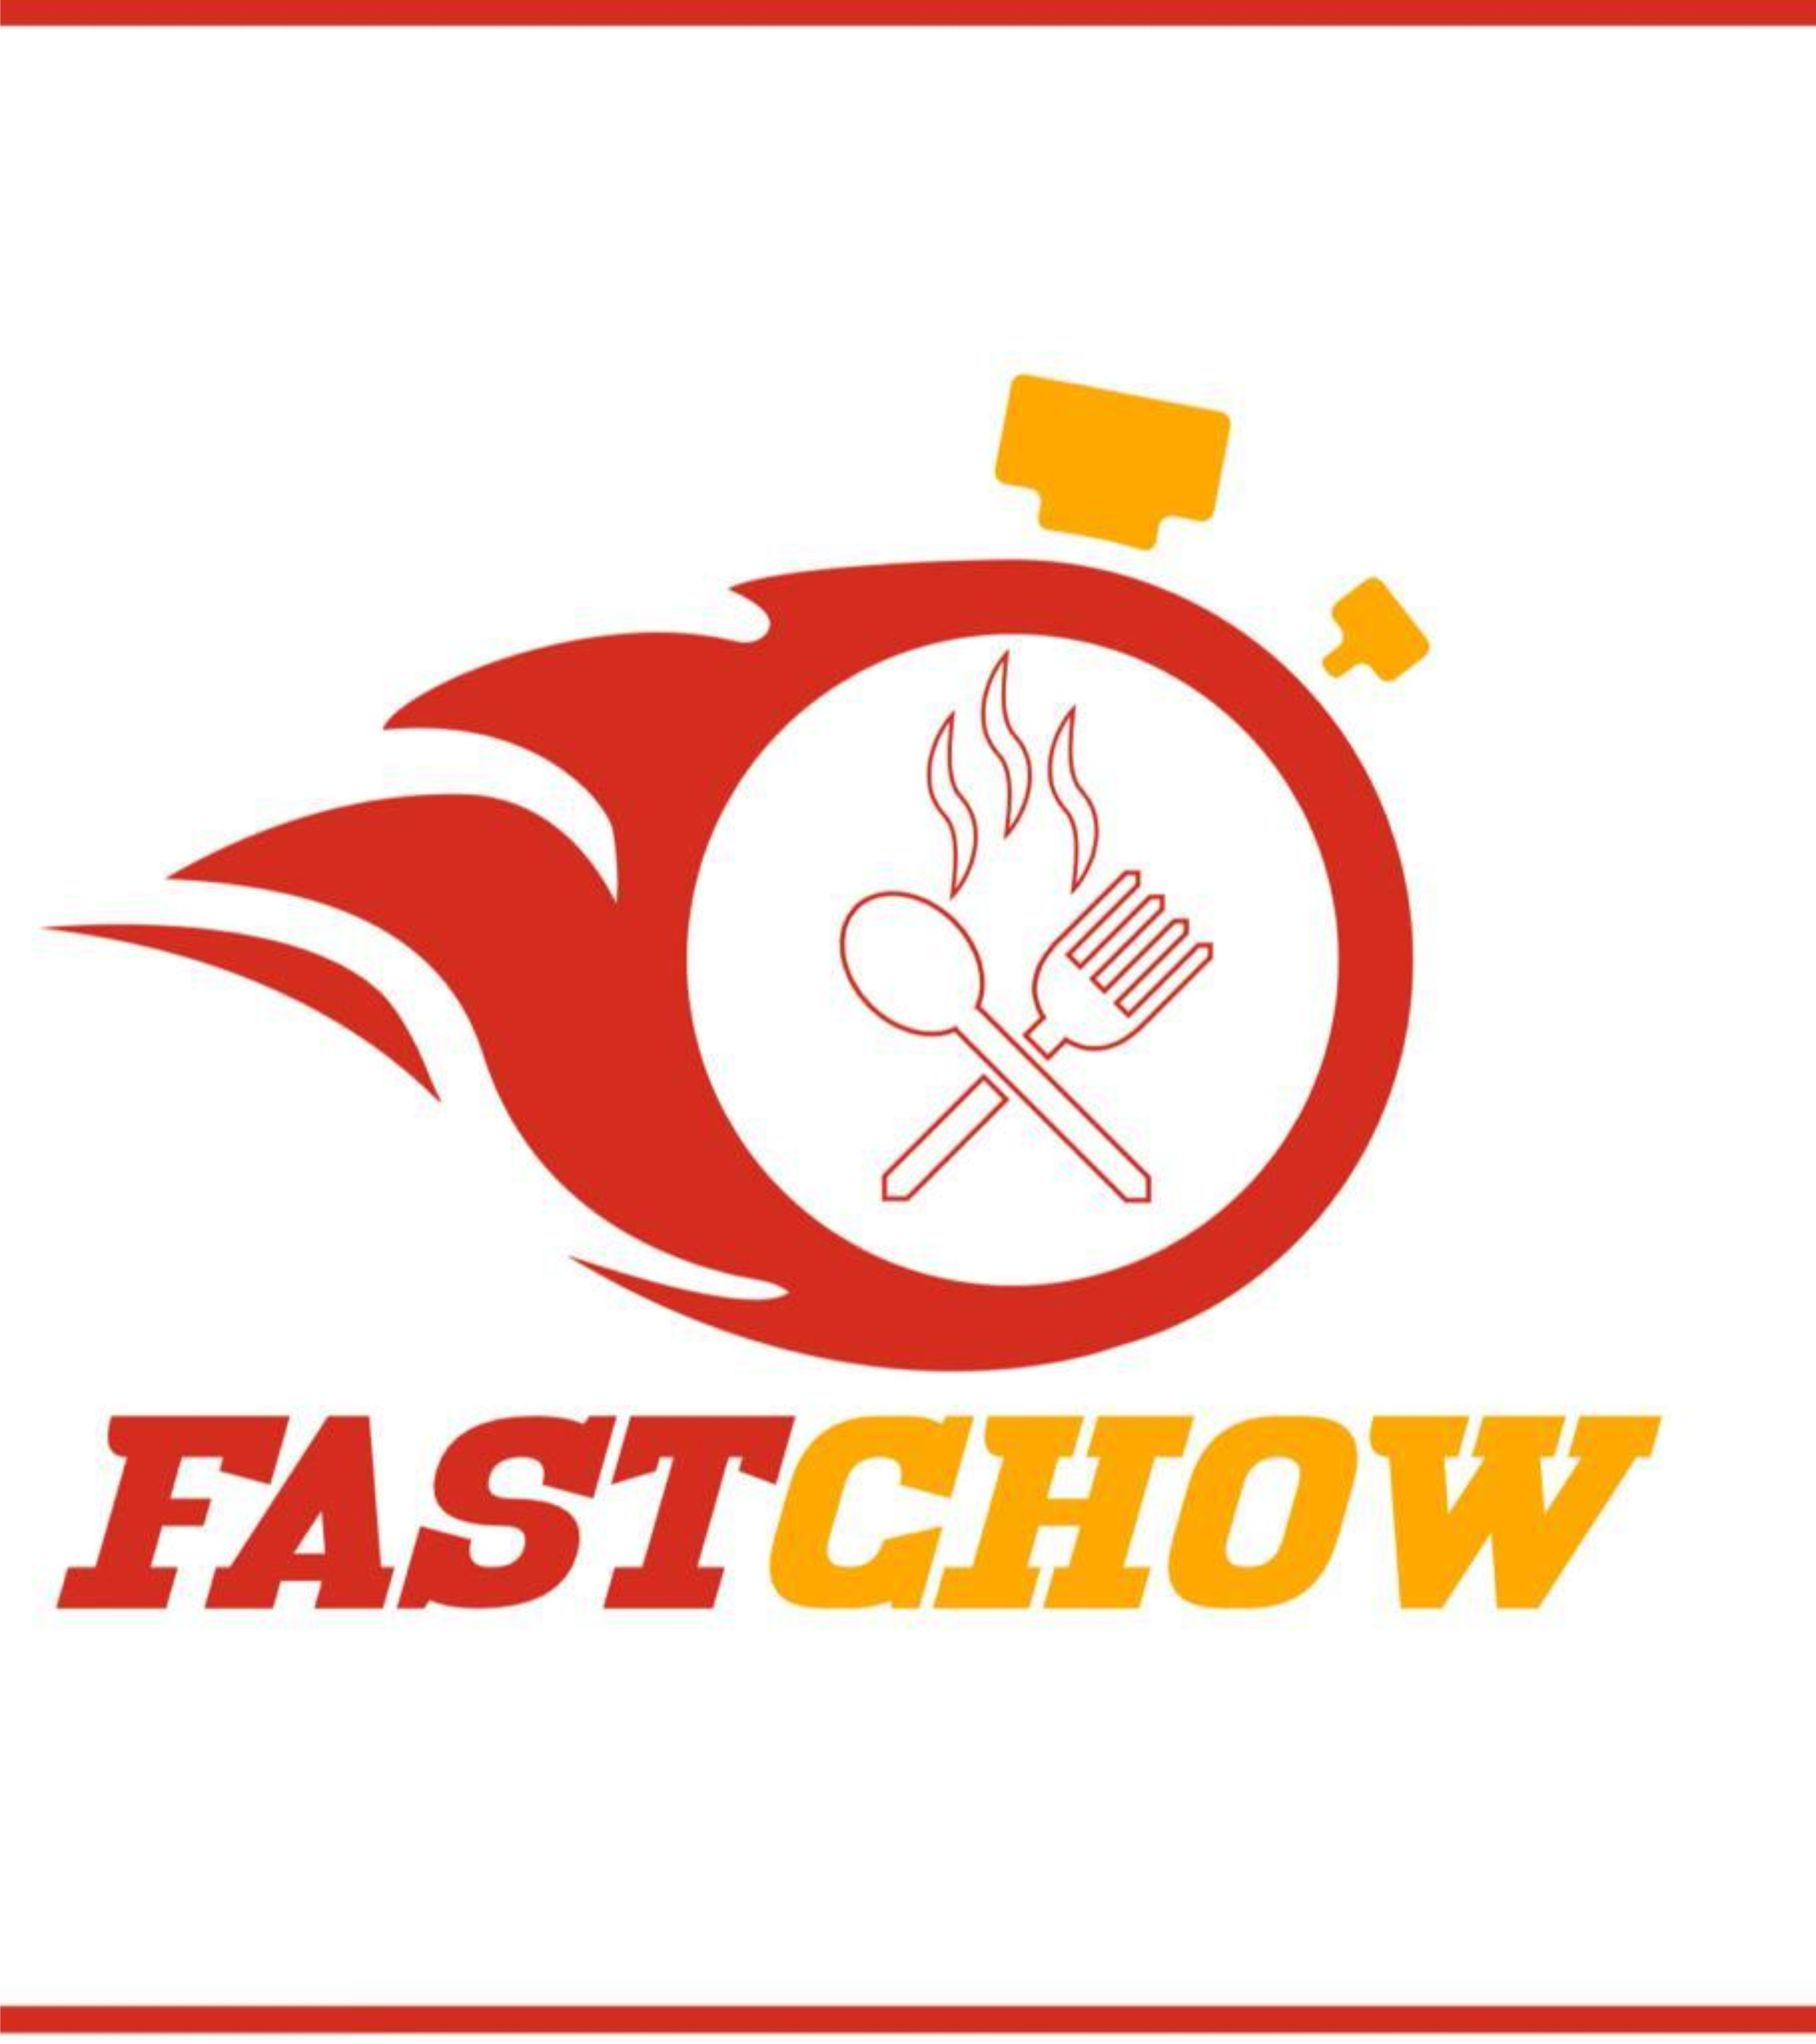 FastChow